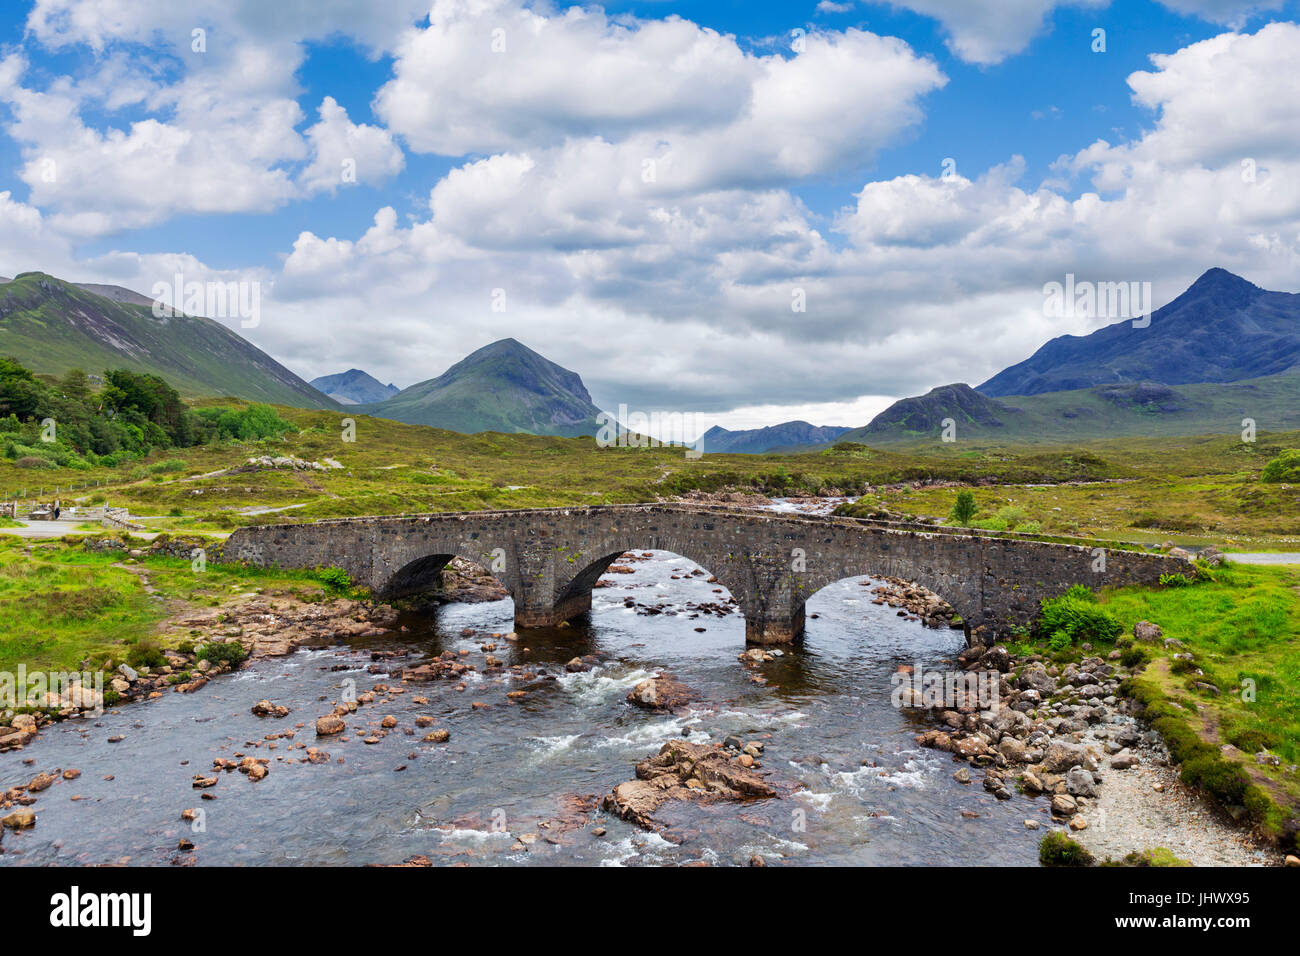 Vieux Pont Sligachan regardant vers la chaîne de montagnes Cuillin, île de Skye, Highland, Scotland, UK Photo Stock